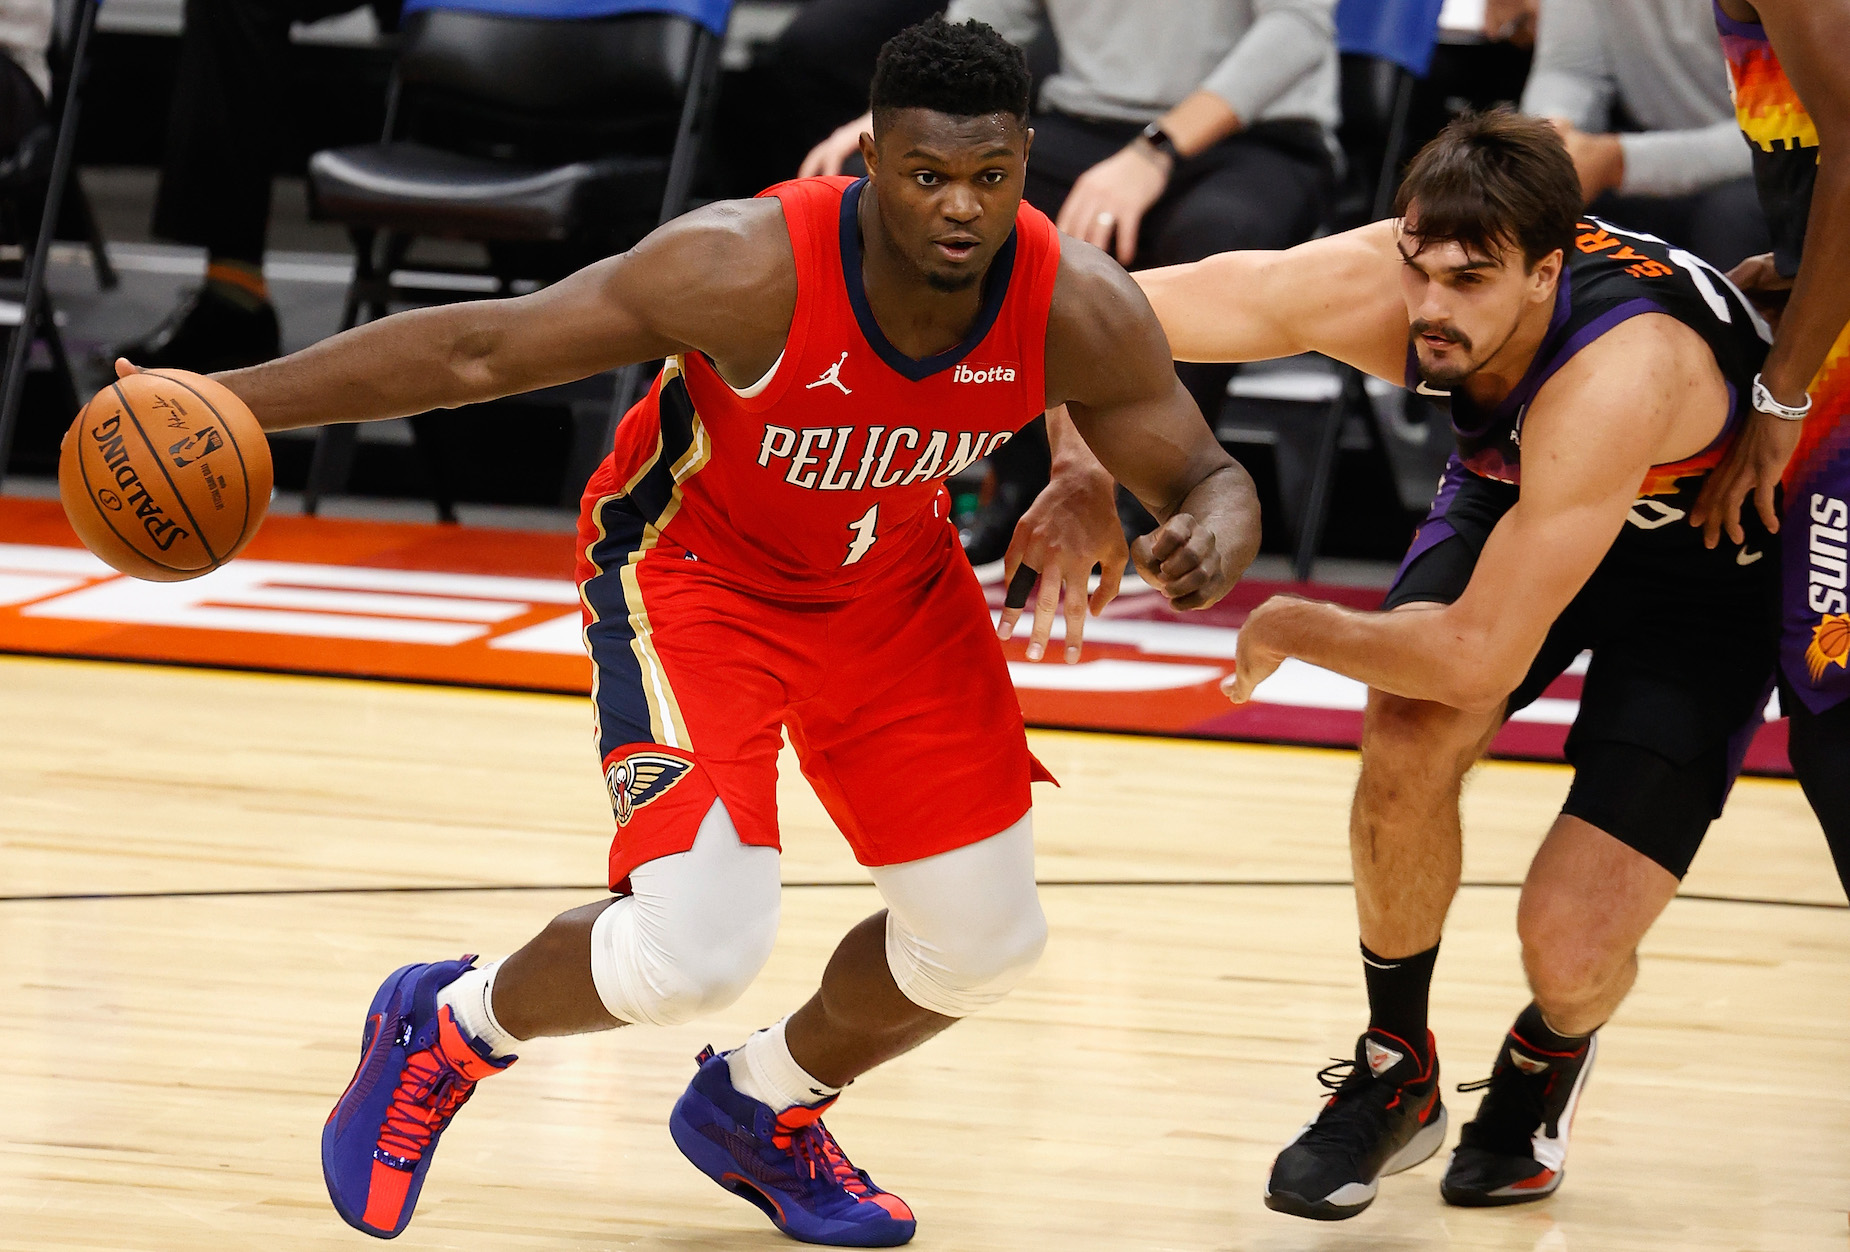 New Orleans Pelicans forward Zion Williamson changed up his diet after a disappointing rookie campaign.